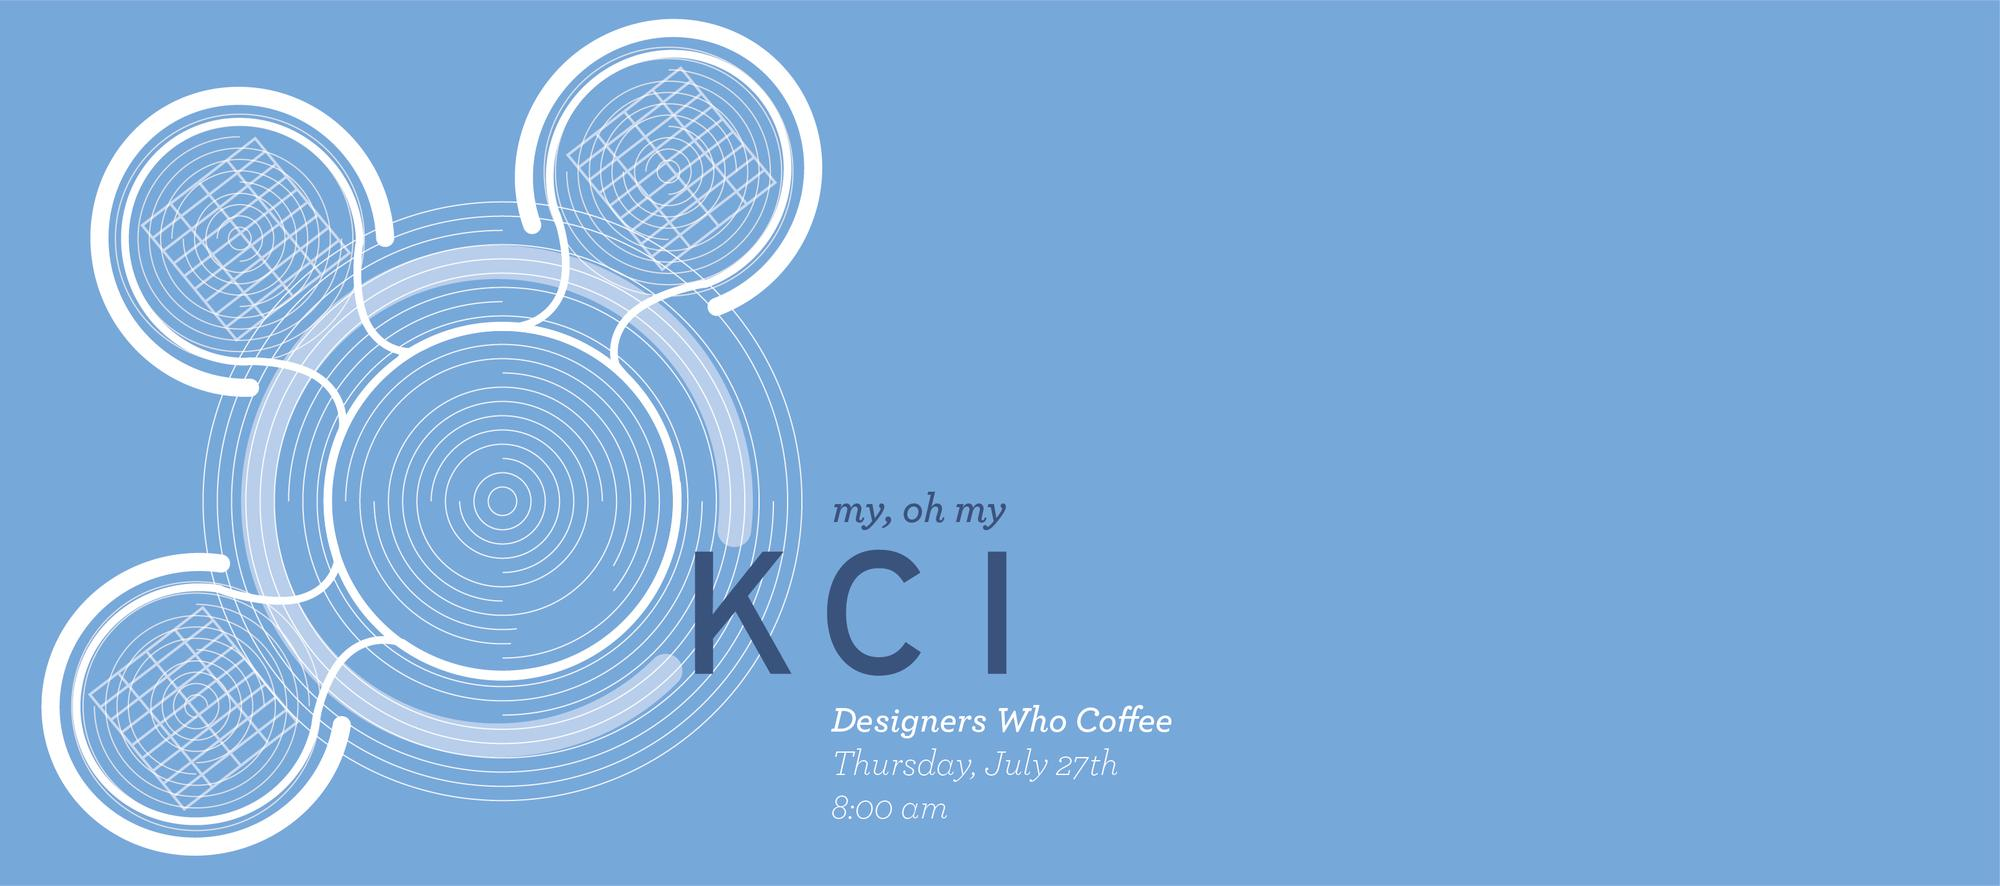 Designers Who Coffee My Oh My Kci Tickets In Kansas City